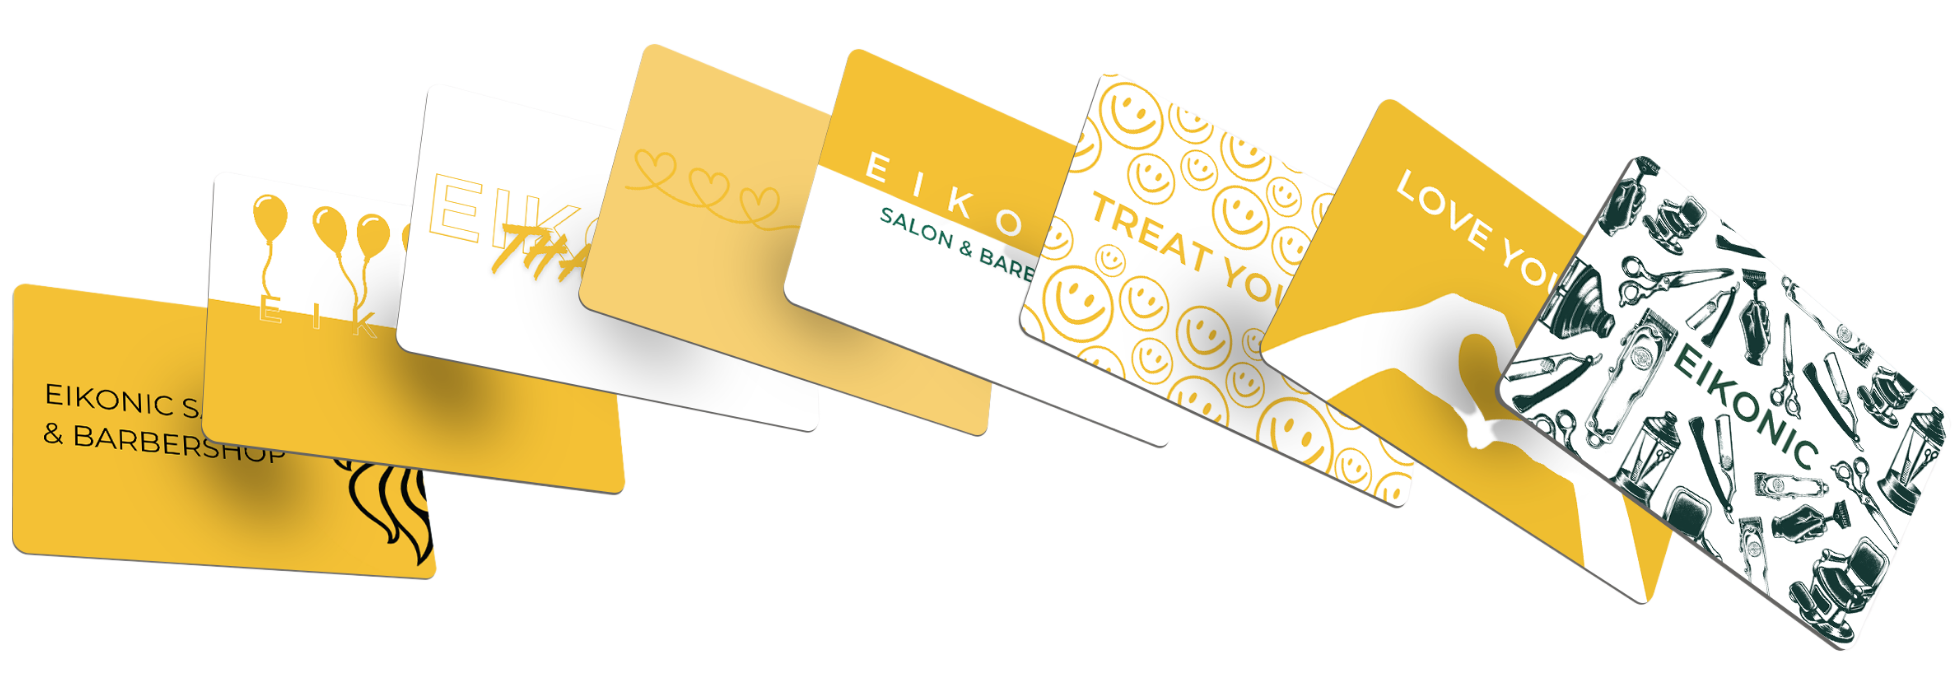 Salon service gift cards